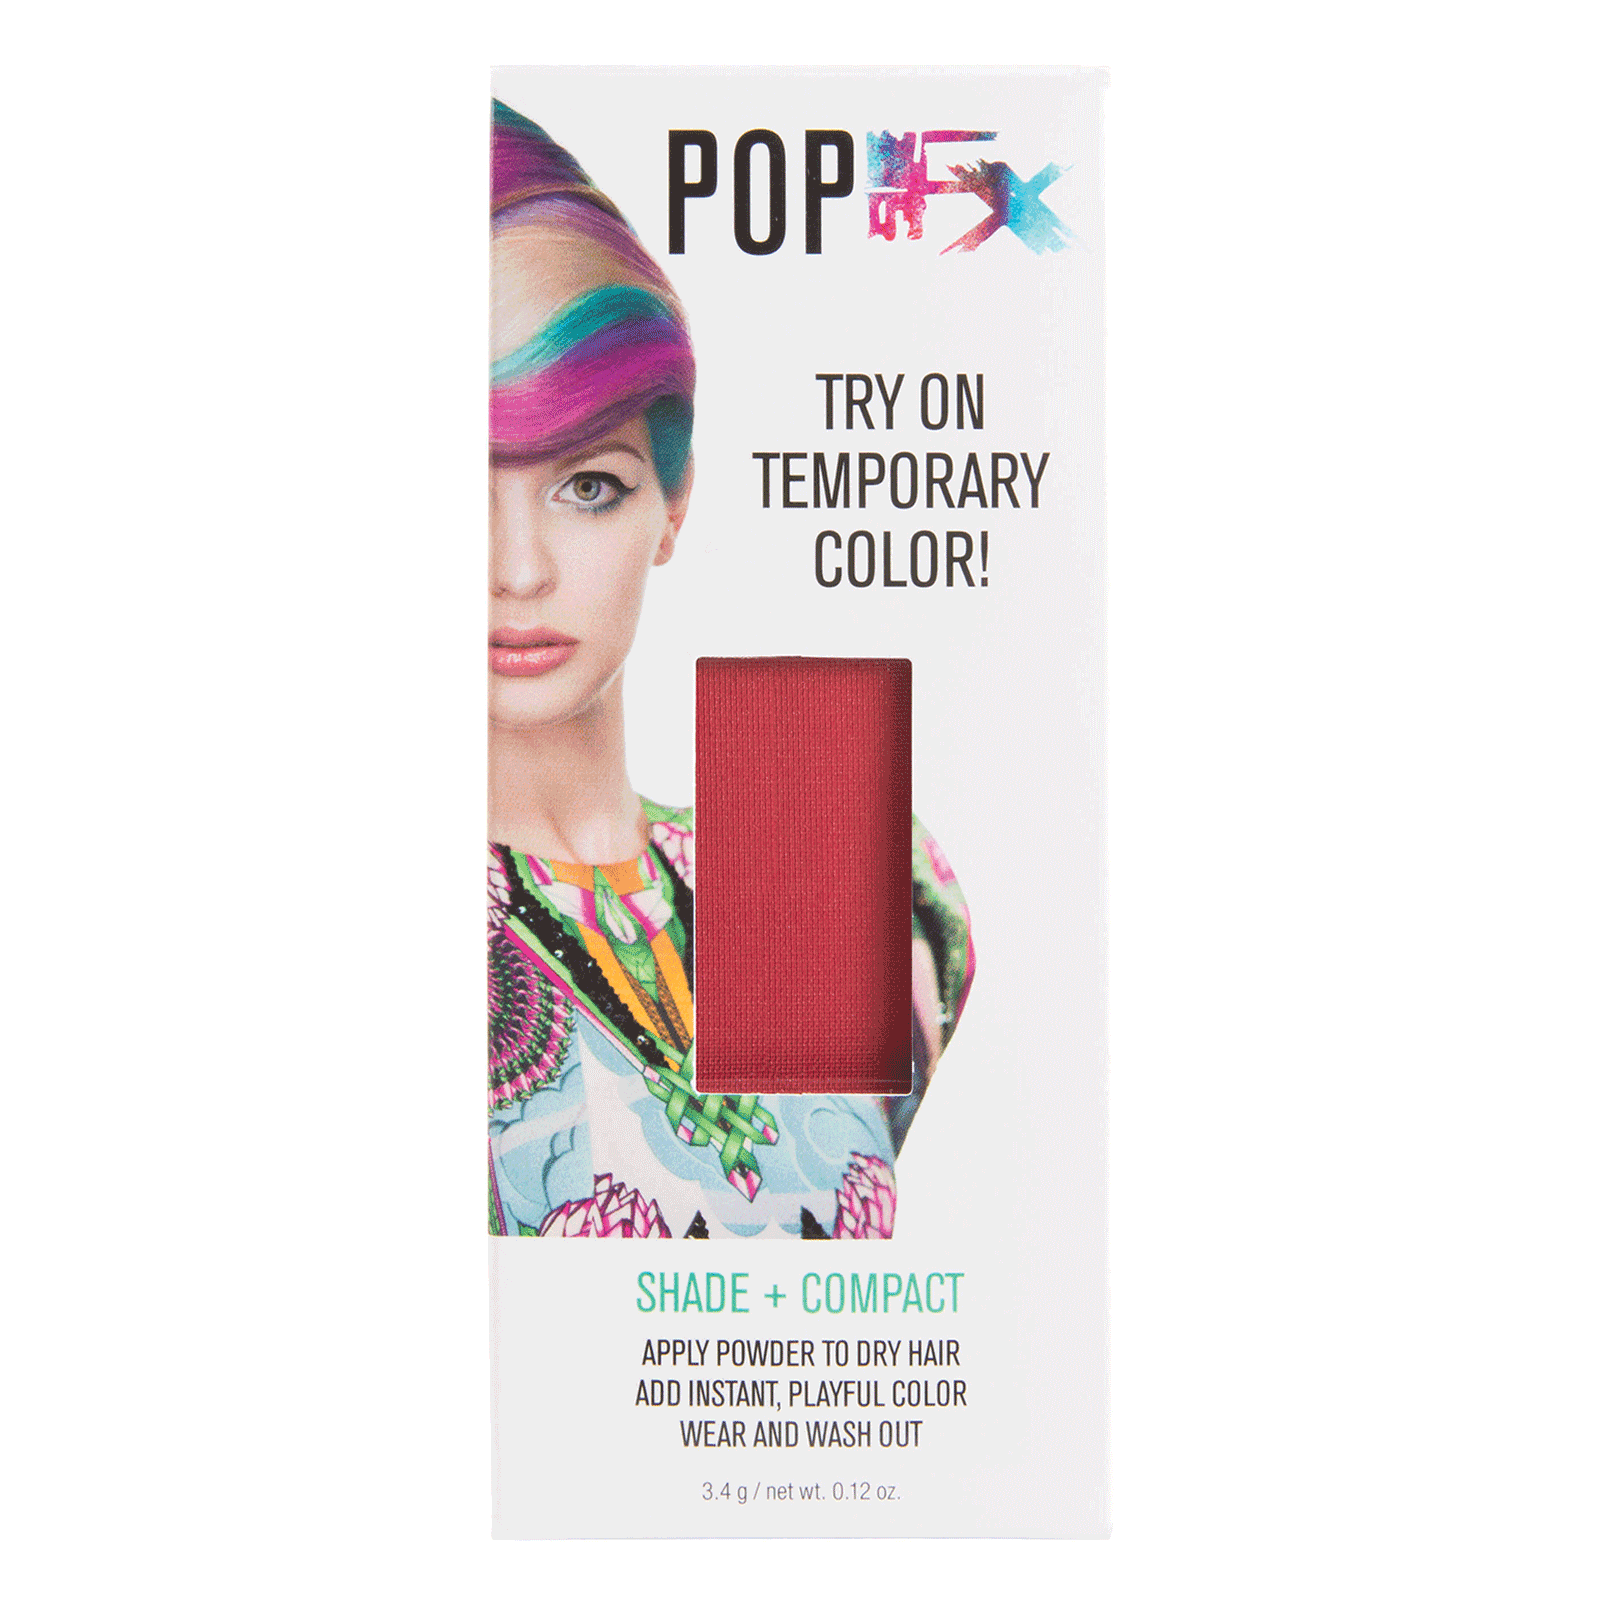 PopFX - Try On Temporary Color